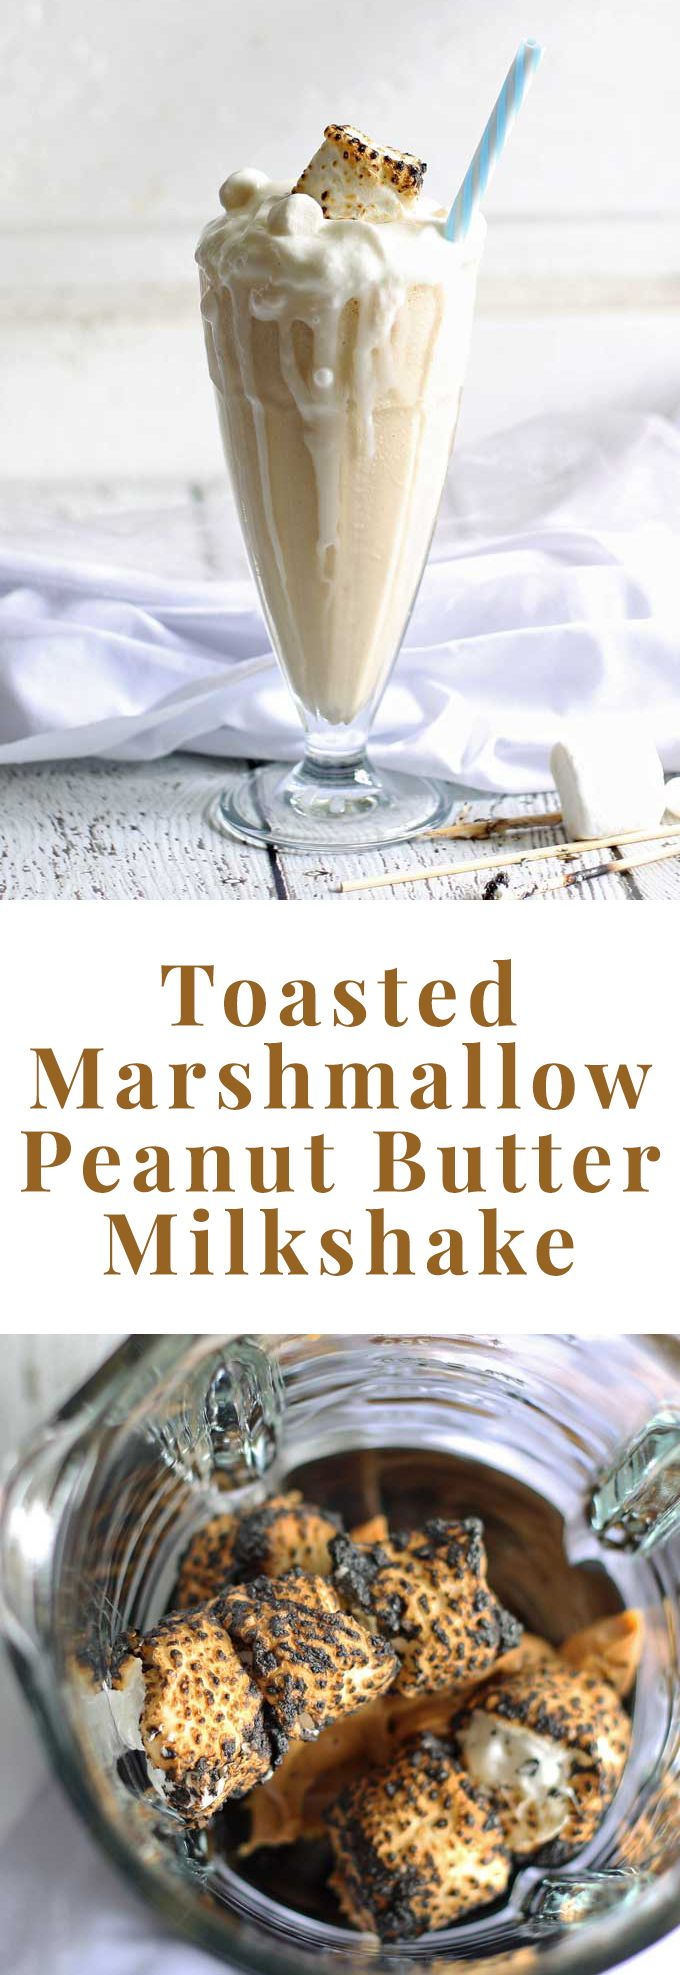 You probably have the ingredients for this toasted marshmallow peanut butter milkshake in your fridge and pantry! Make this delicious dessert beverage today!   honeyandbirch.com